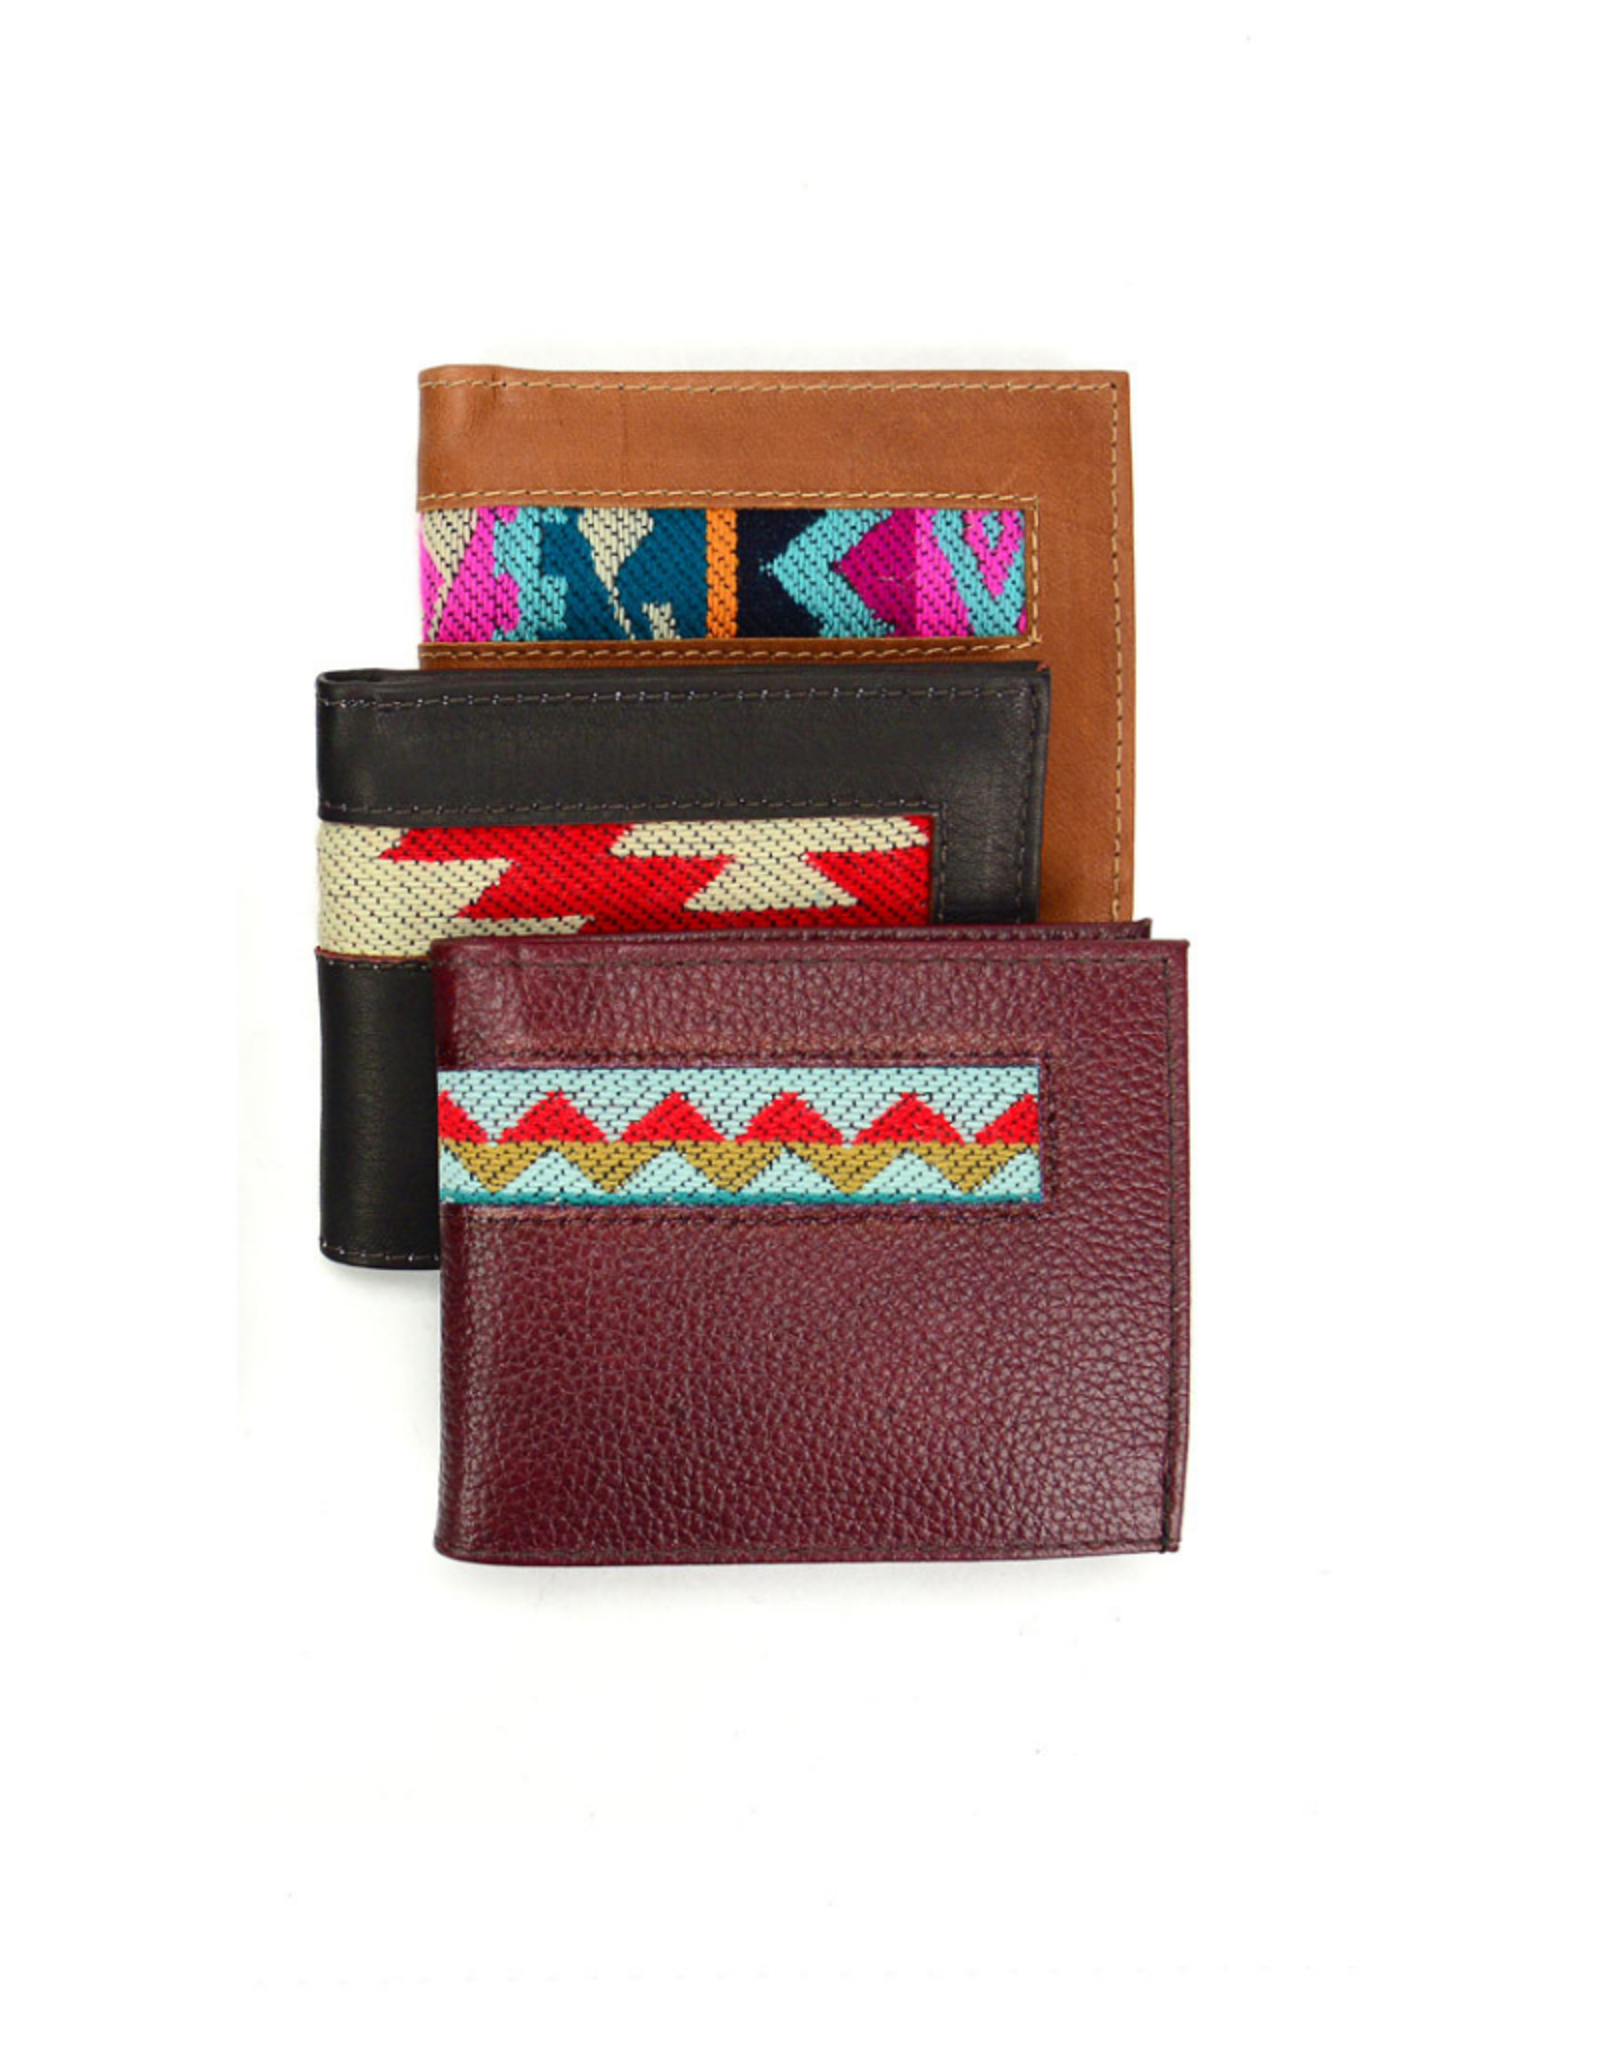 Minga Wallet Leather Bi-fold